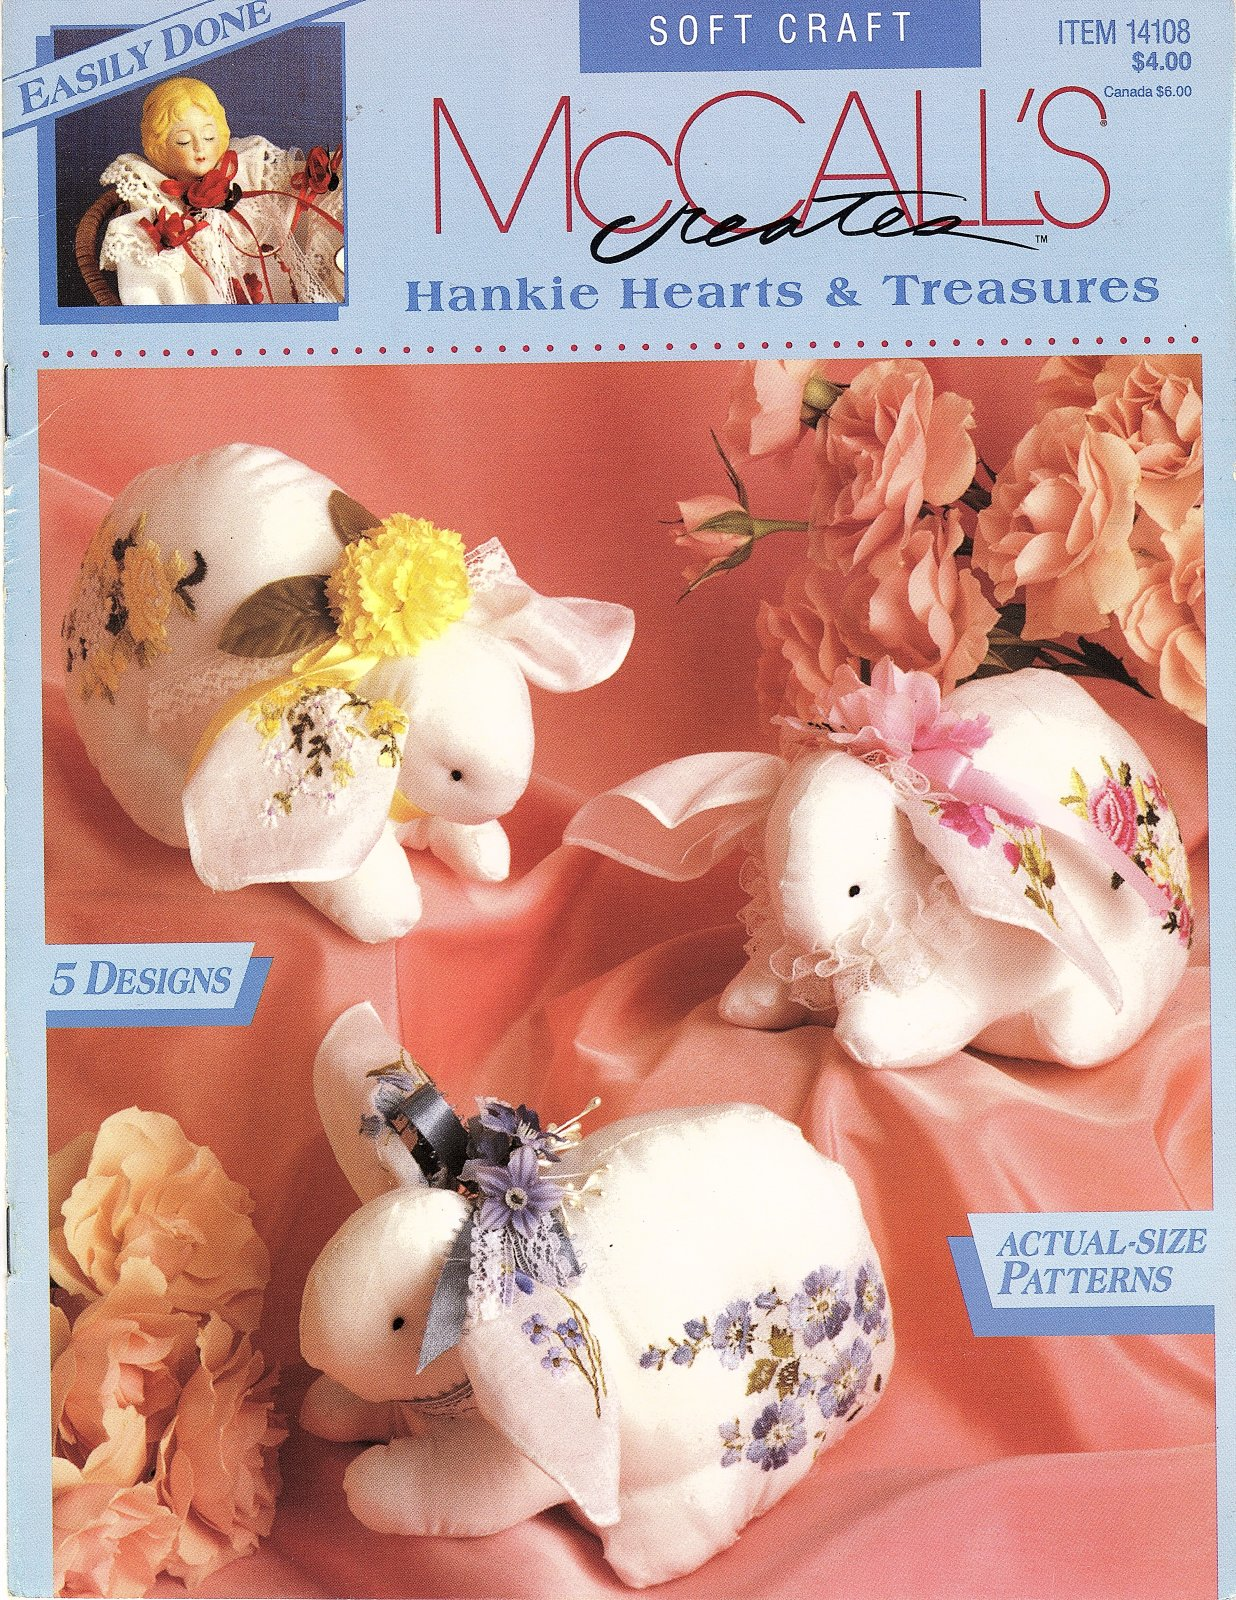 Hankie Hearts & Treasures by McCall's Creates - 5 Designs - Actual Size Patterns